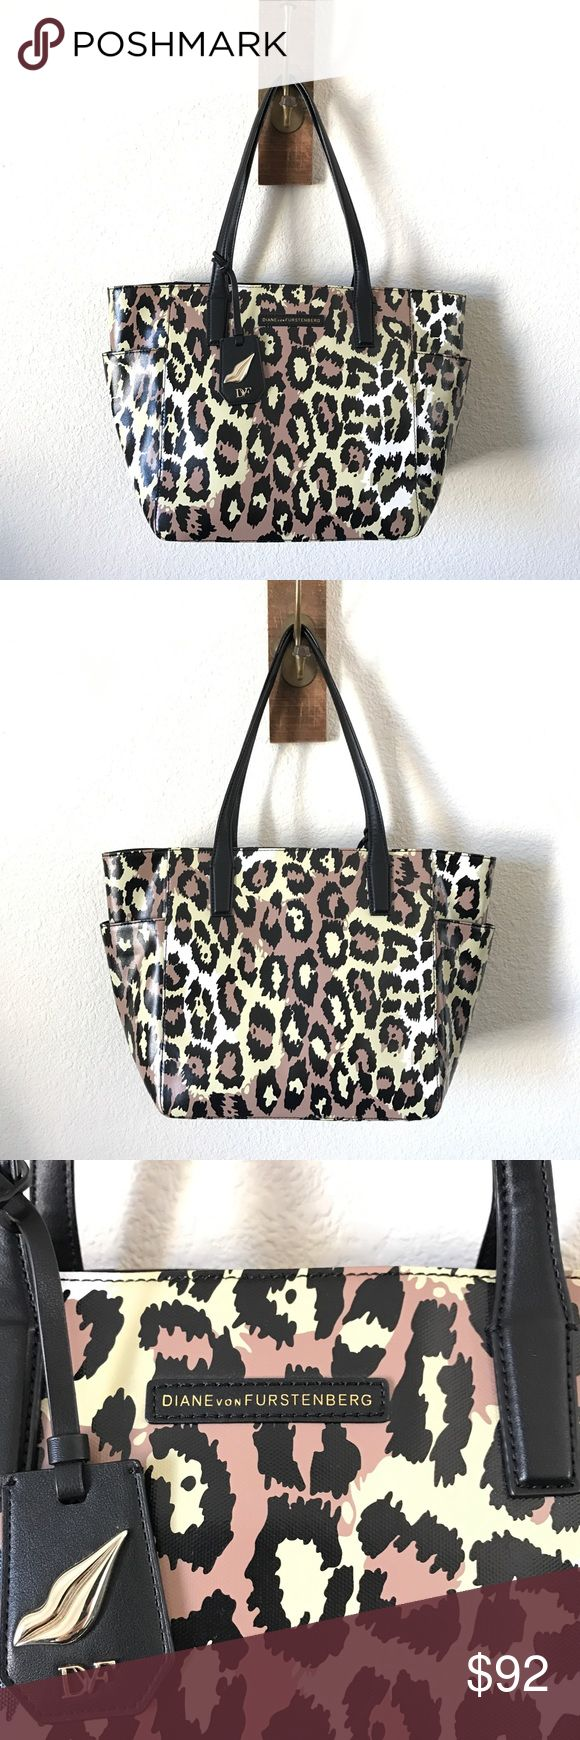 Diane von Furstenberg Coated Canvas LEOPARD Tote😍 Beautiful DVF tote, with black flat leather shoulder straps & magnetic snap closure. Will come with authenticity cards, no dust bag. One zipper pocket & two interior open pockets. EUC.   SELLERS NOTE:  •All items are inspected and described as thoroughly and honestly as possible.  •Items are sold as is (as described)  •Each order is packaged with extreme CARE & SHIPPED SAME/NEXT BUSINESS DAY, unless seller communicates otherwise. Diane von…